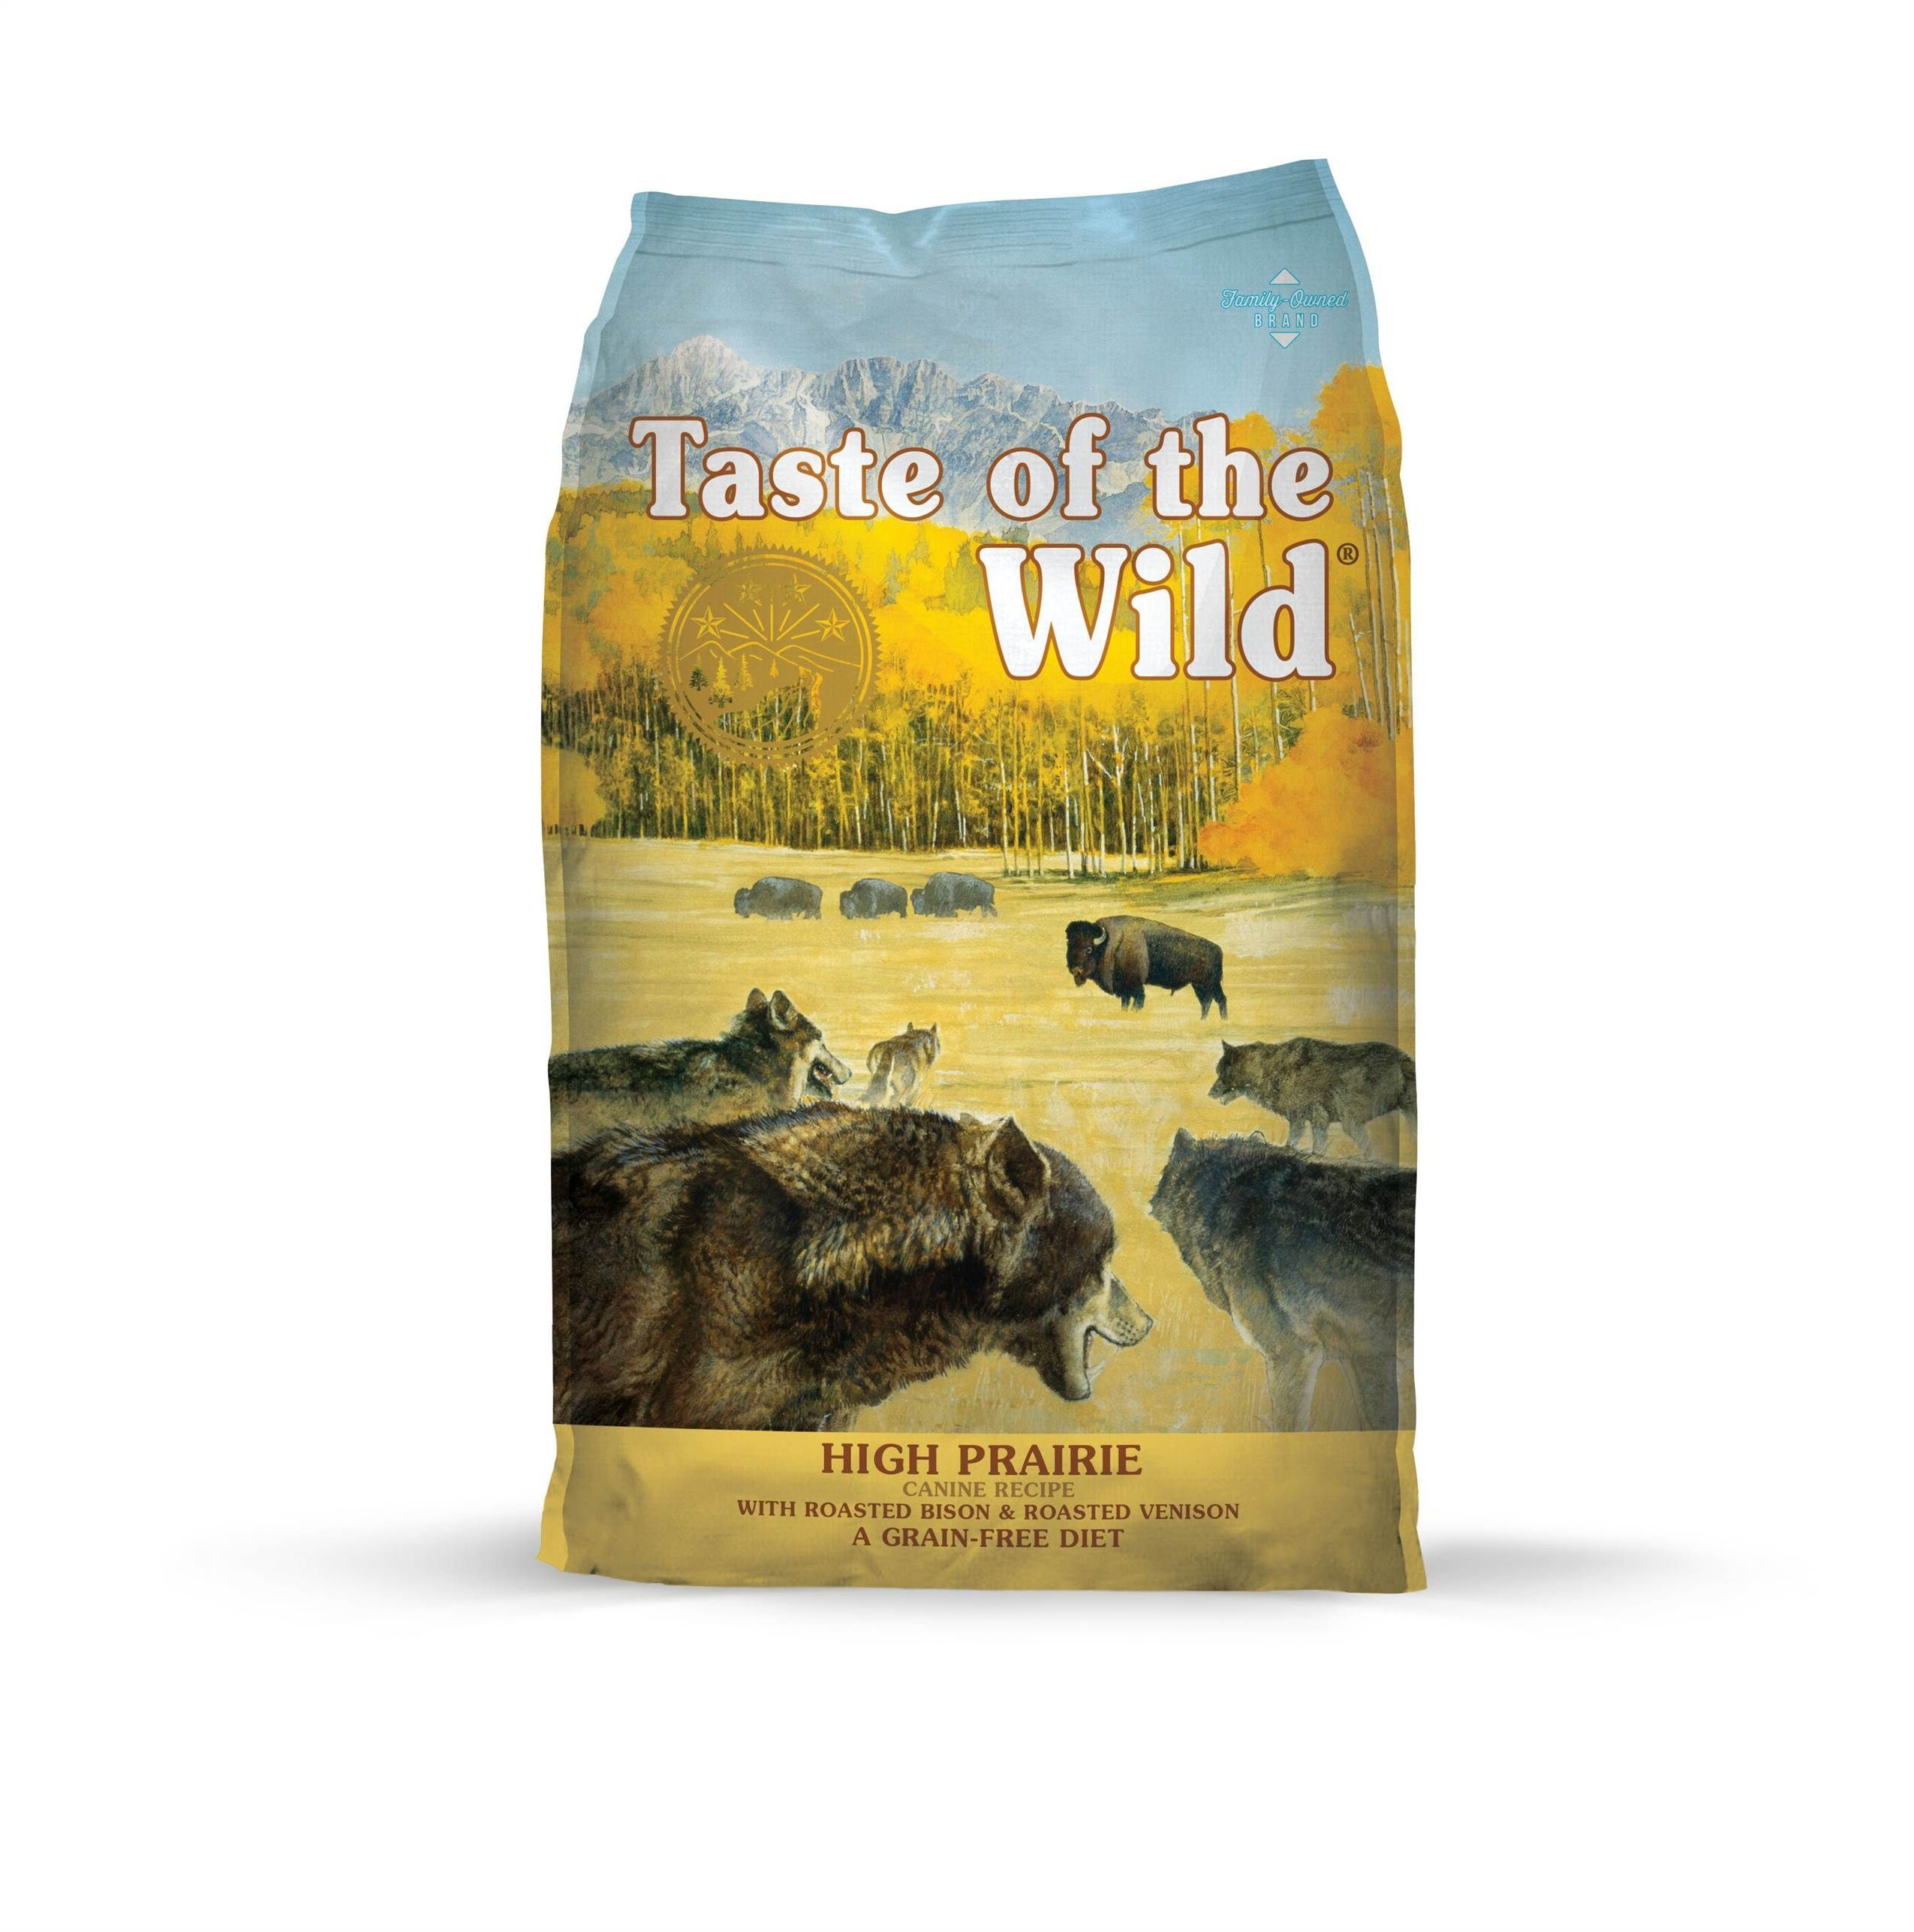 Taste of the Wild High Prairie with Roasted Bison and Roasted Venison Formula Dry Dog Food 5lbs-28lbs 00013